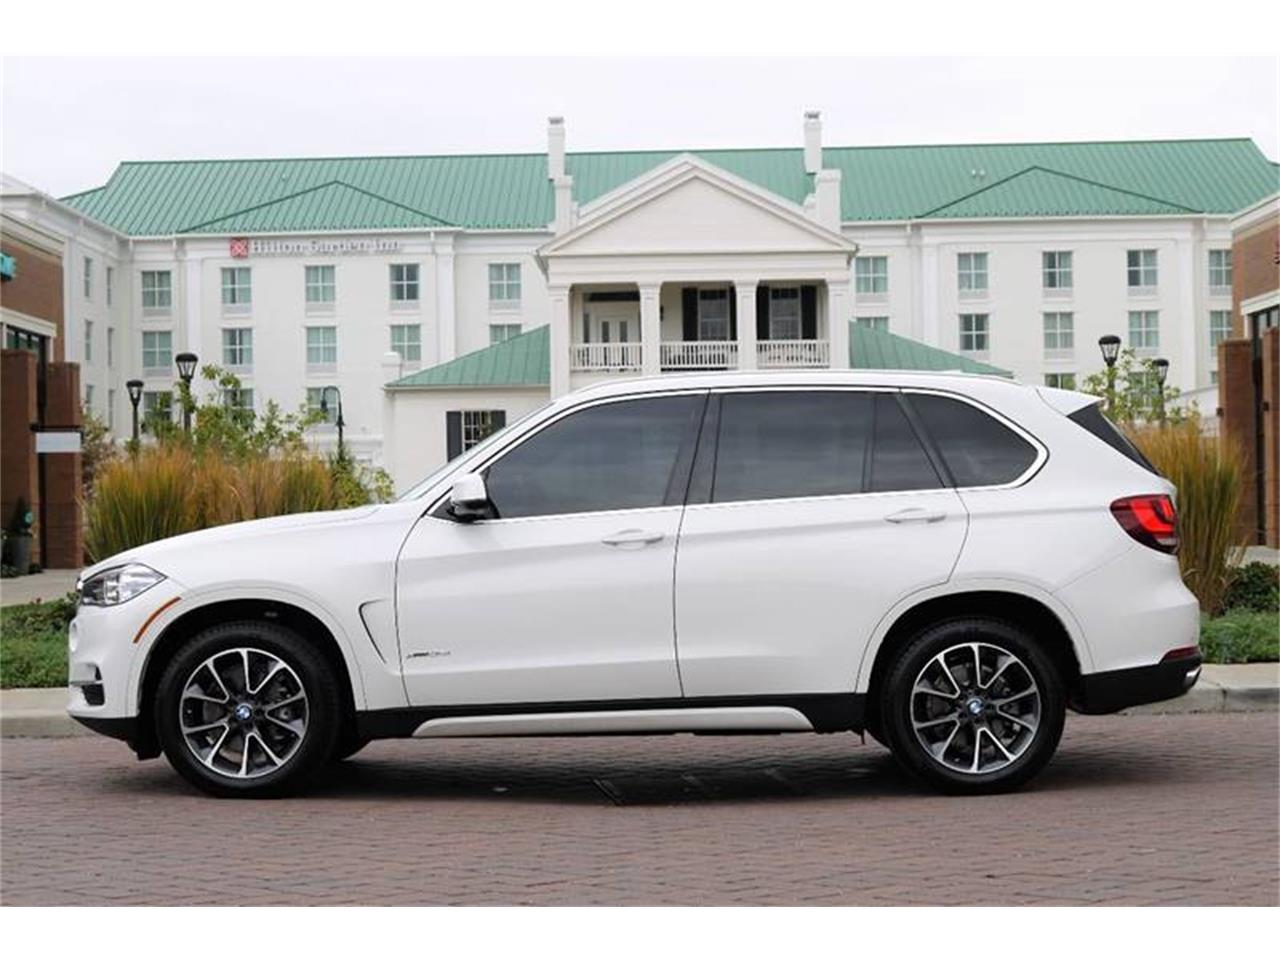 Large Picture of 2017 BMW X5 located in Tennessee Offered by Arde Motorcars - MOC5